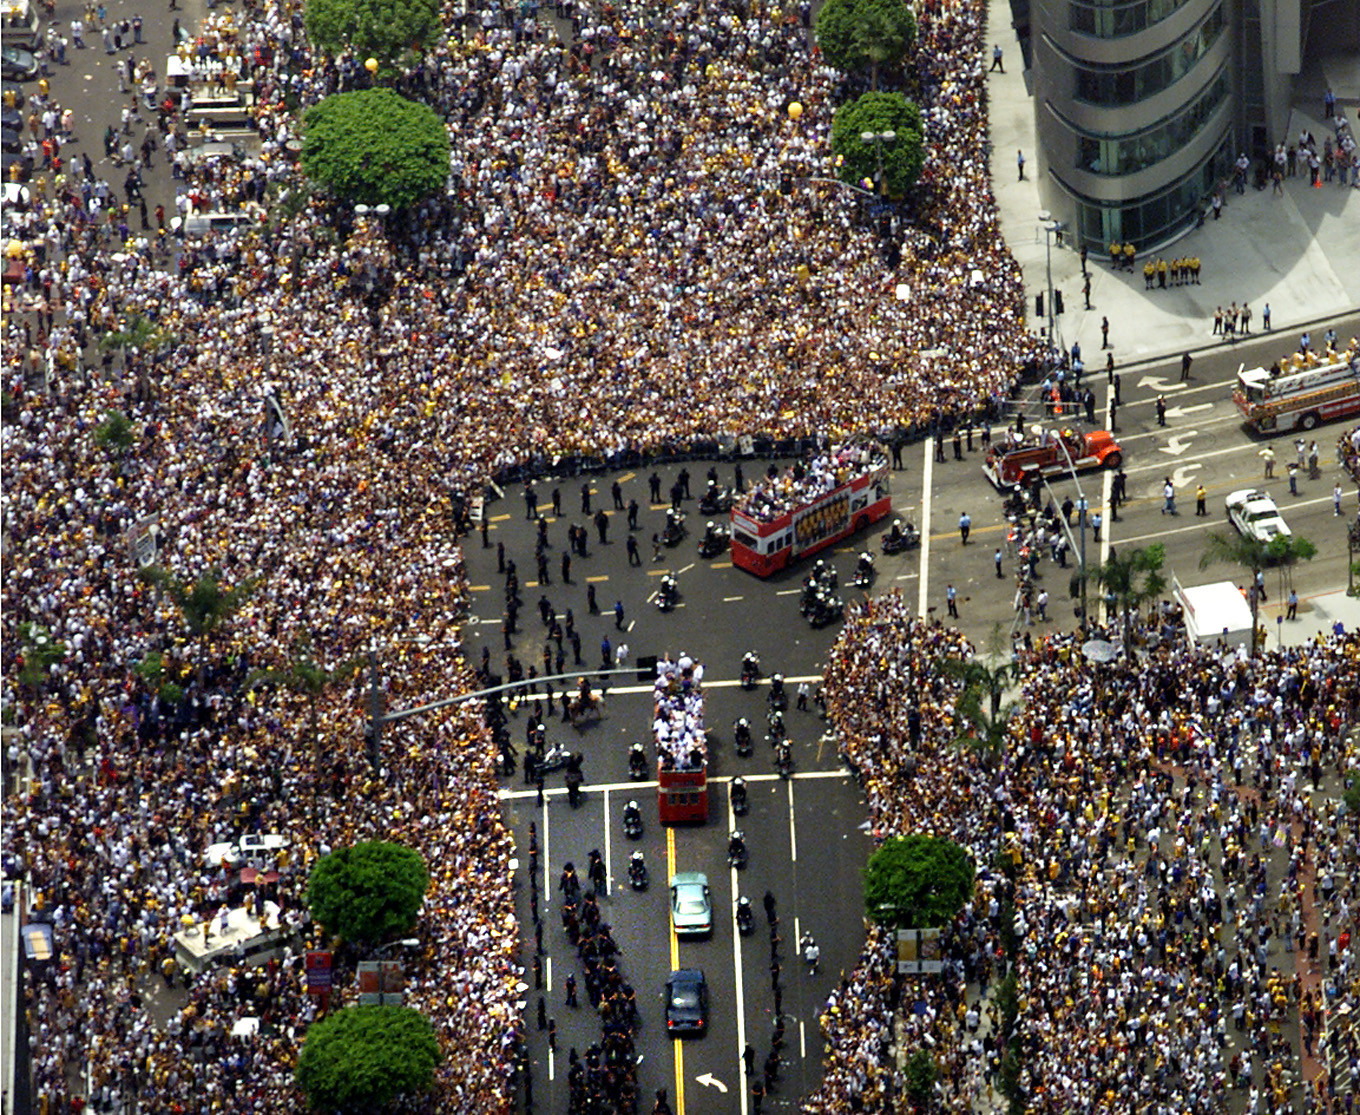 Throngs of fans crowd the streets during a Lakers parade in 2000.